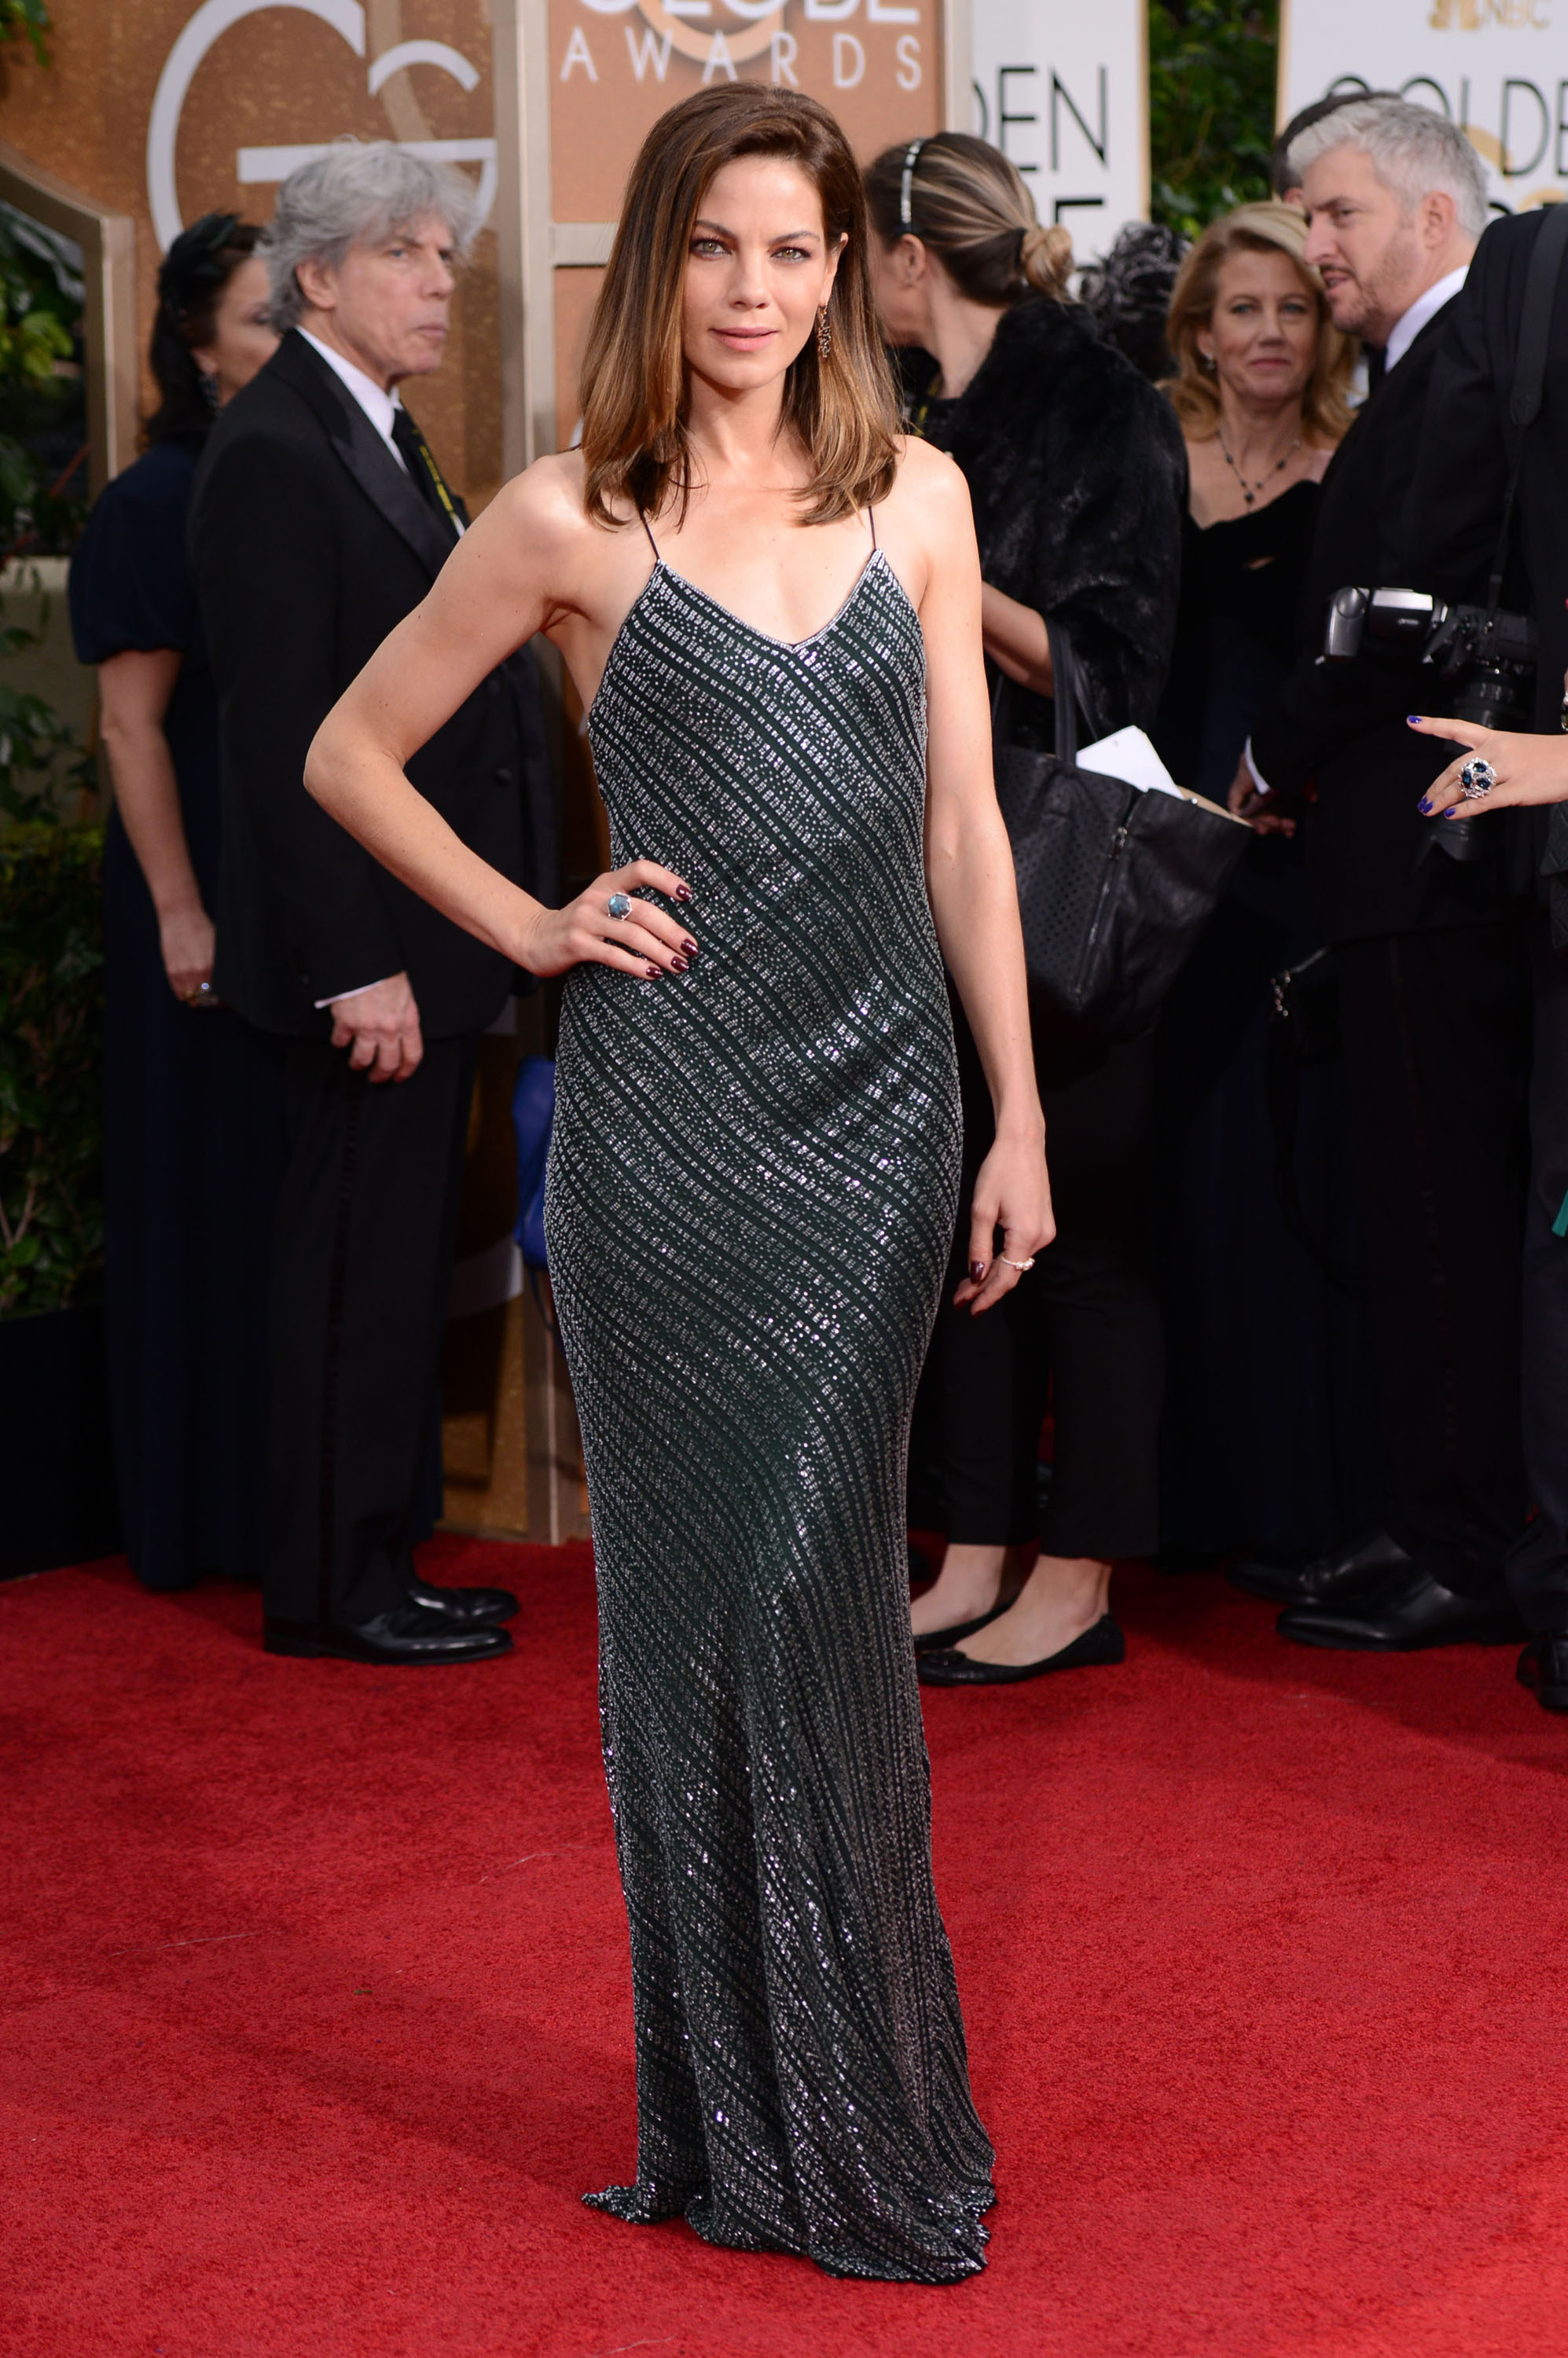 Golden Globes Fug or Fab: Michelle Monaghan in Jason Wu